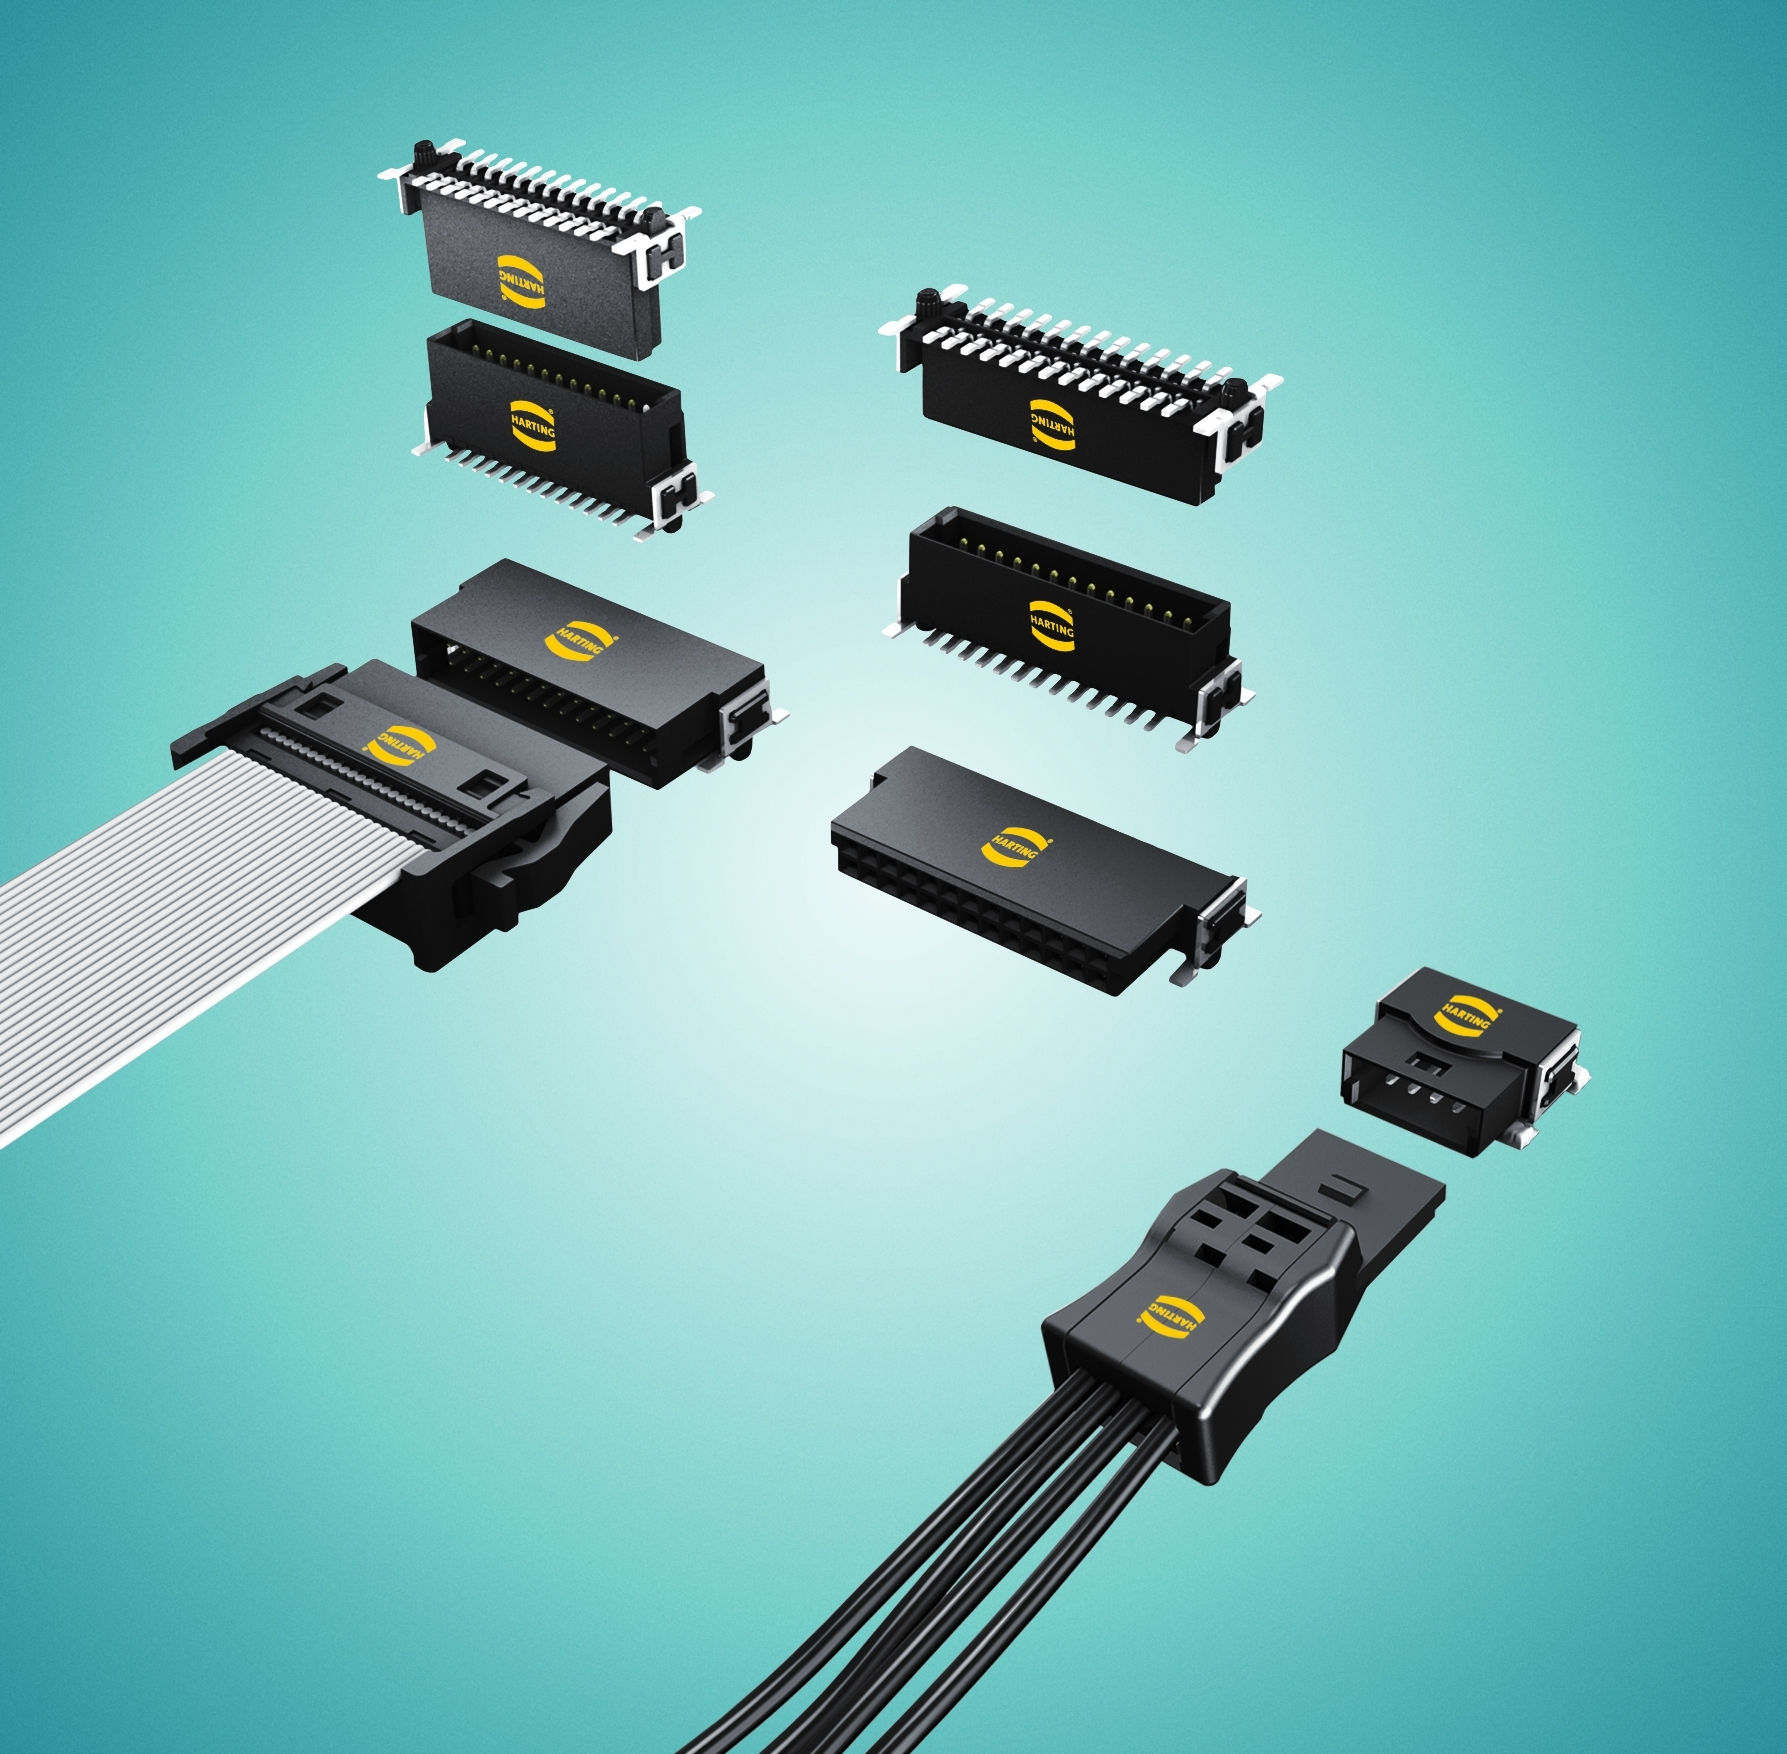 Figure 4: Harting's har-flex and har-flexicon ranges together offer a complete connectivity solution for device-to-board and board-to-board applications